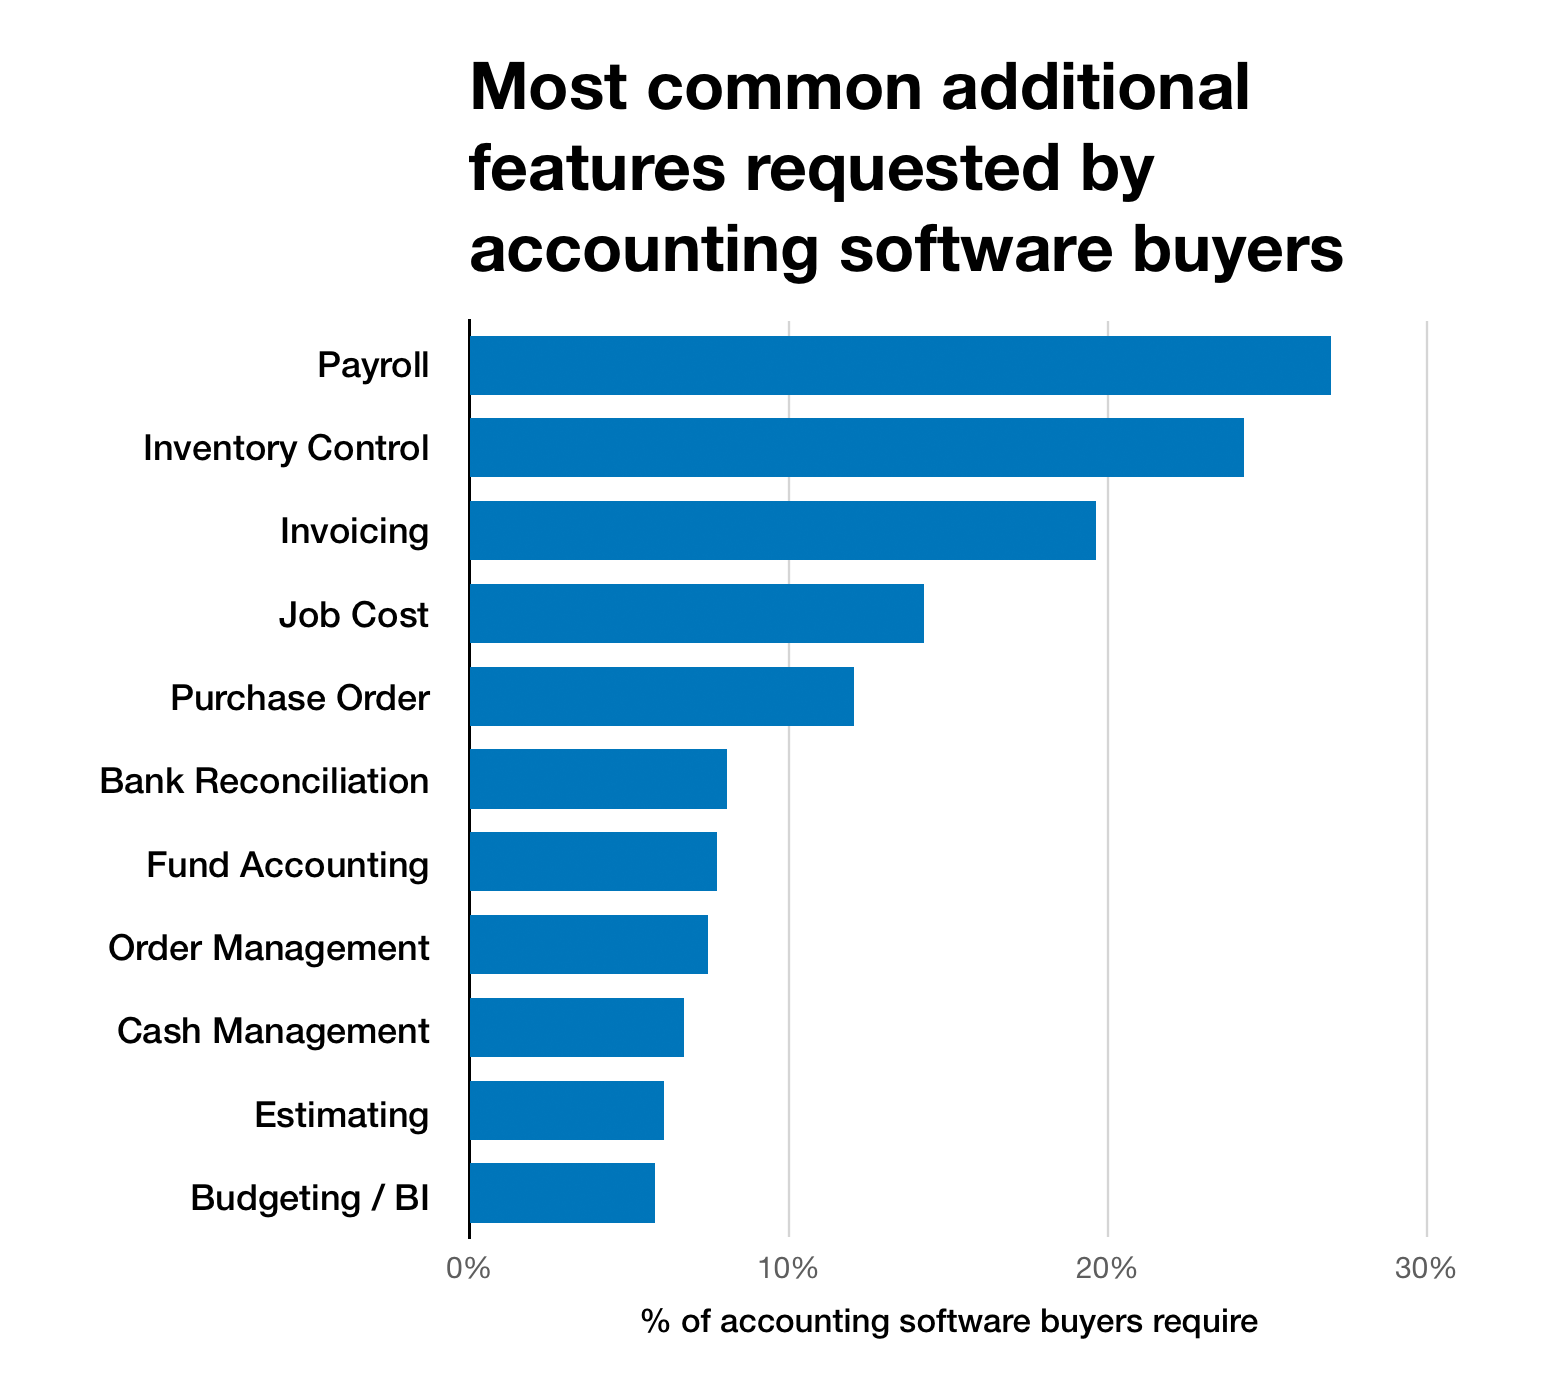 Chart of most common accounting software features